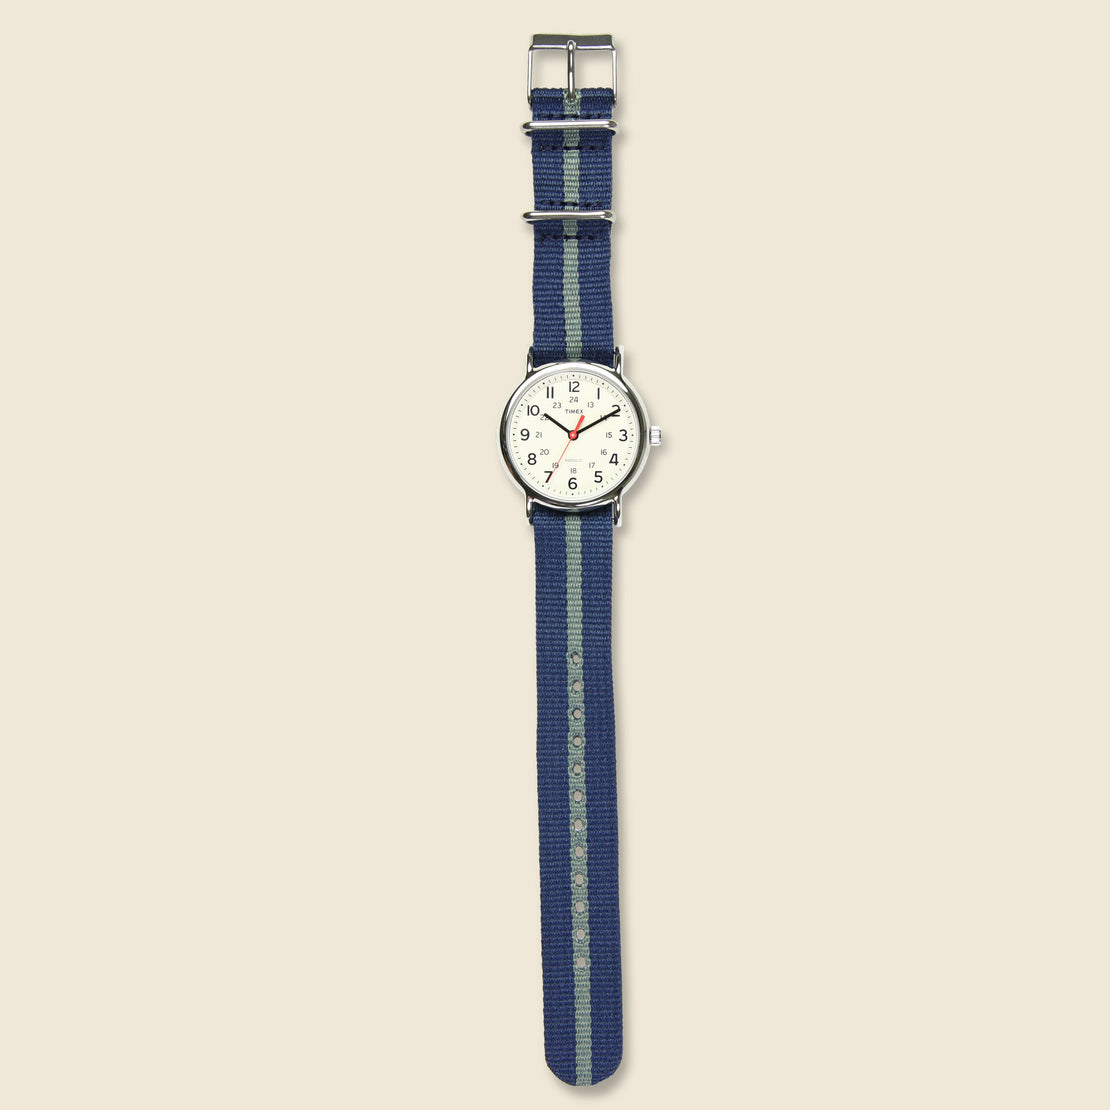 Weekender Watch - Blue/Gray - Timex - STAG Provisions - Accessories - Watches